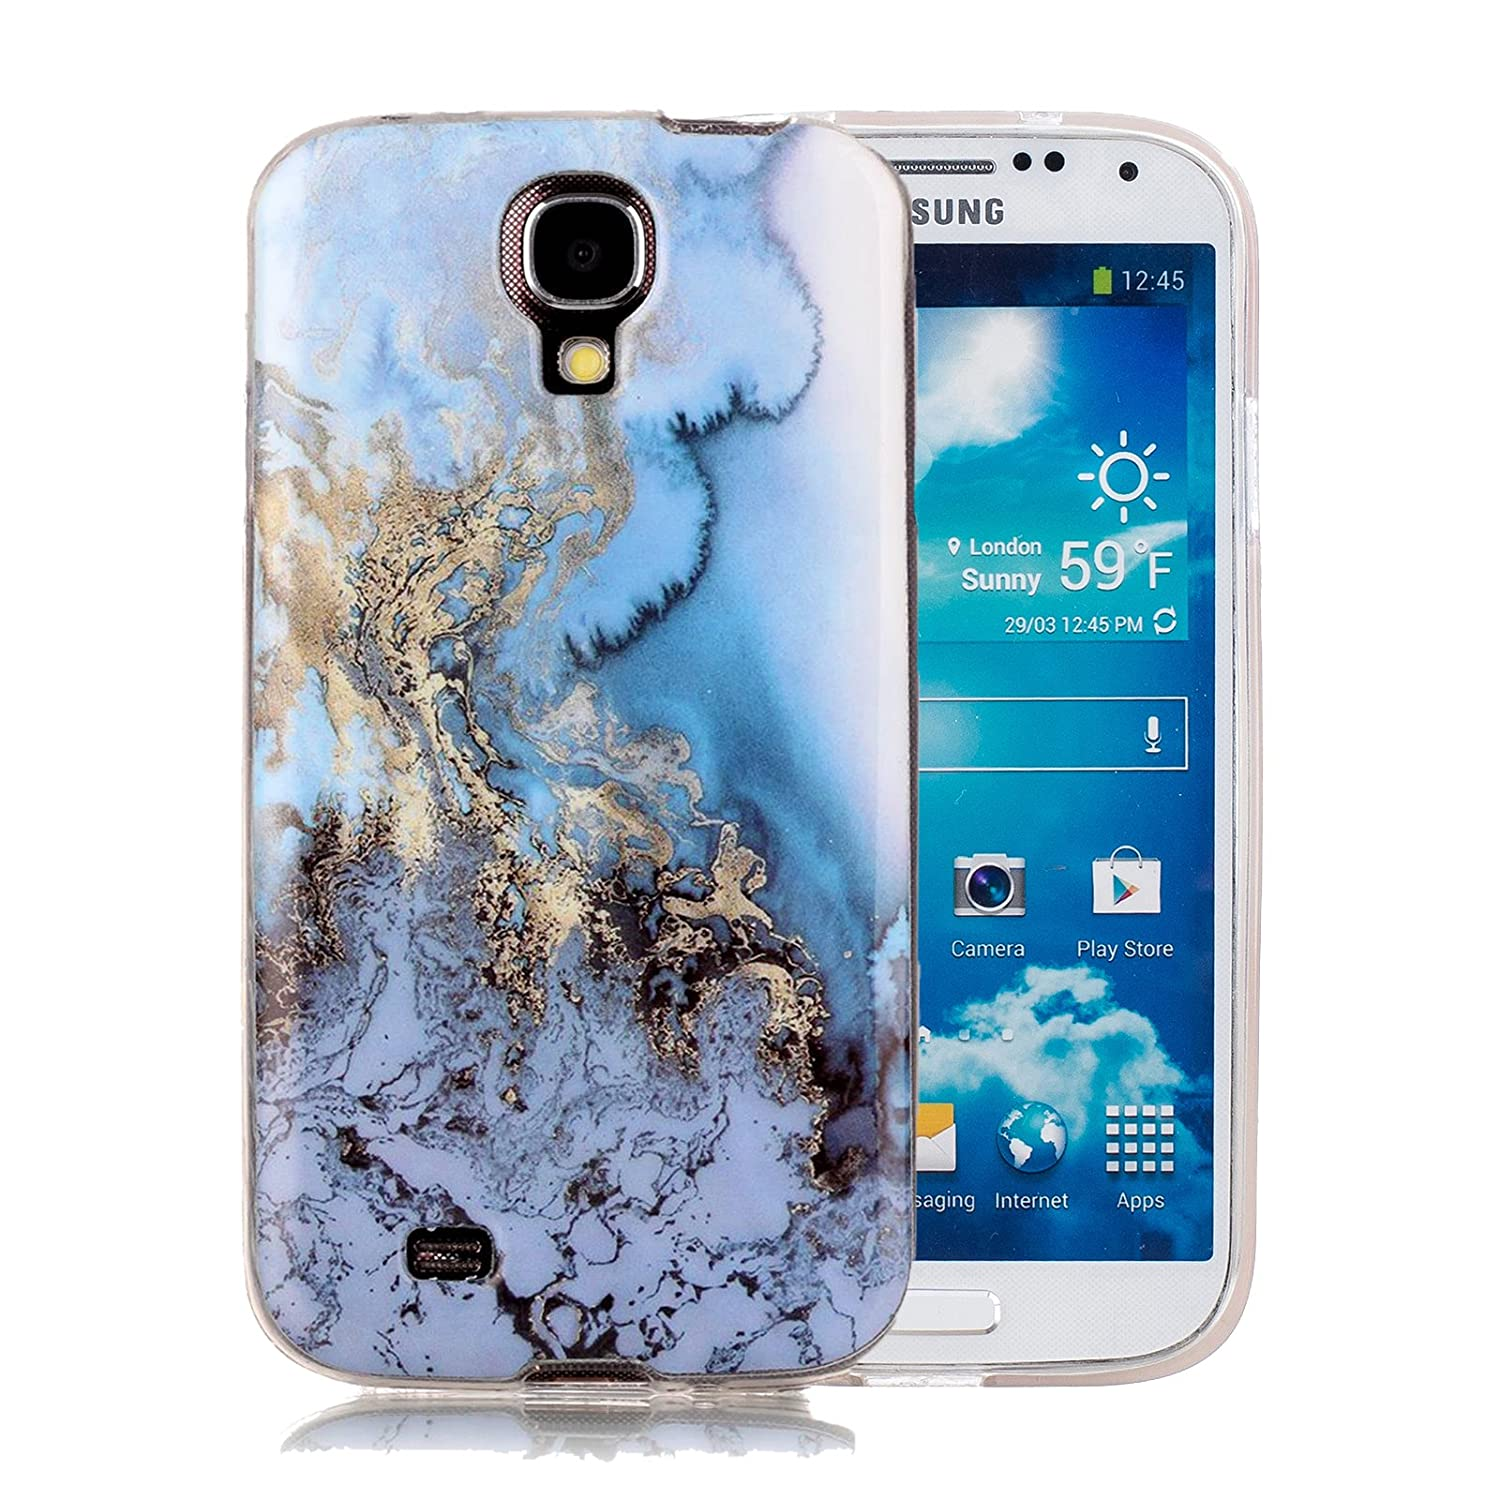 Galaxy S4 Marble Case, Harsel Ultra Thin Premium Stone Texture Collection Hybrid Flexible Light Weight Soft TPU Bumper Anti-Scratch Protective Durable ...